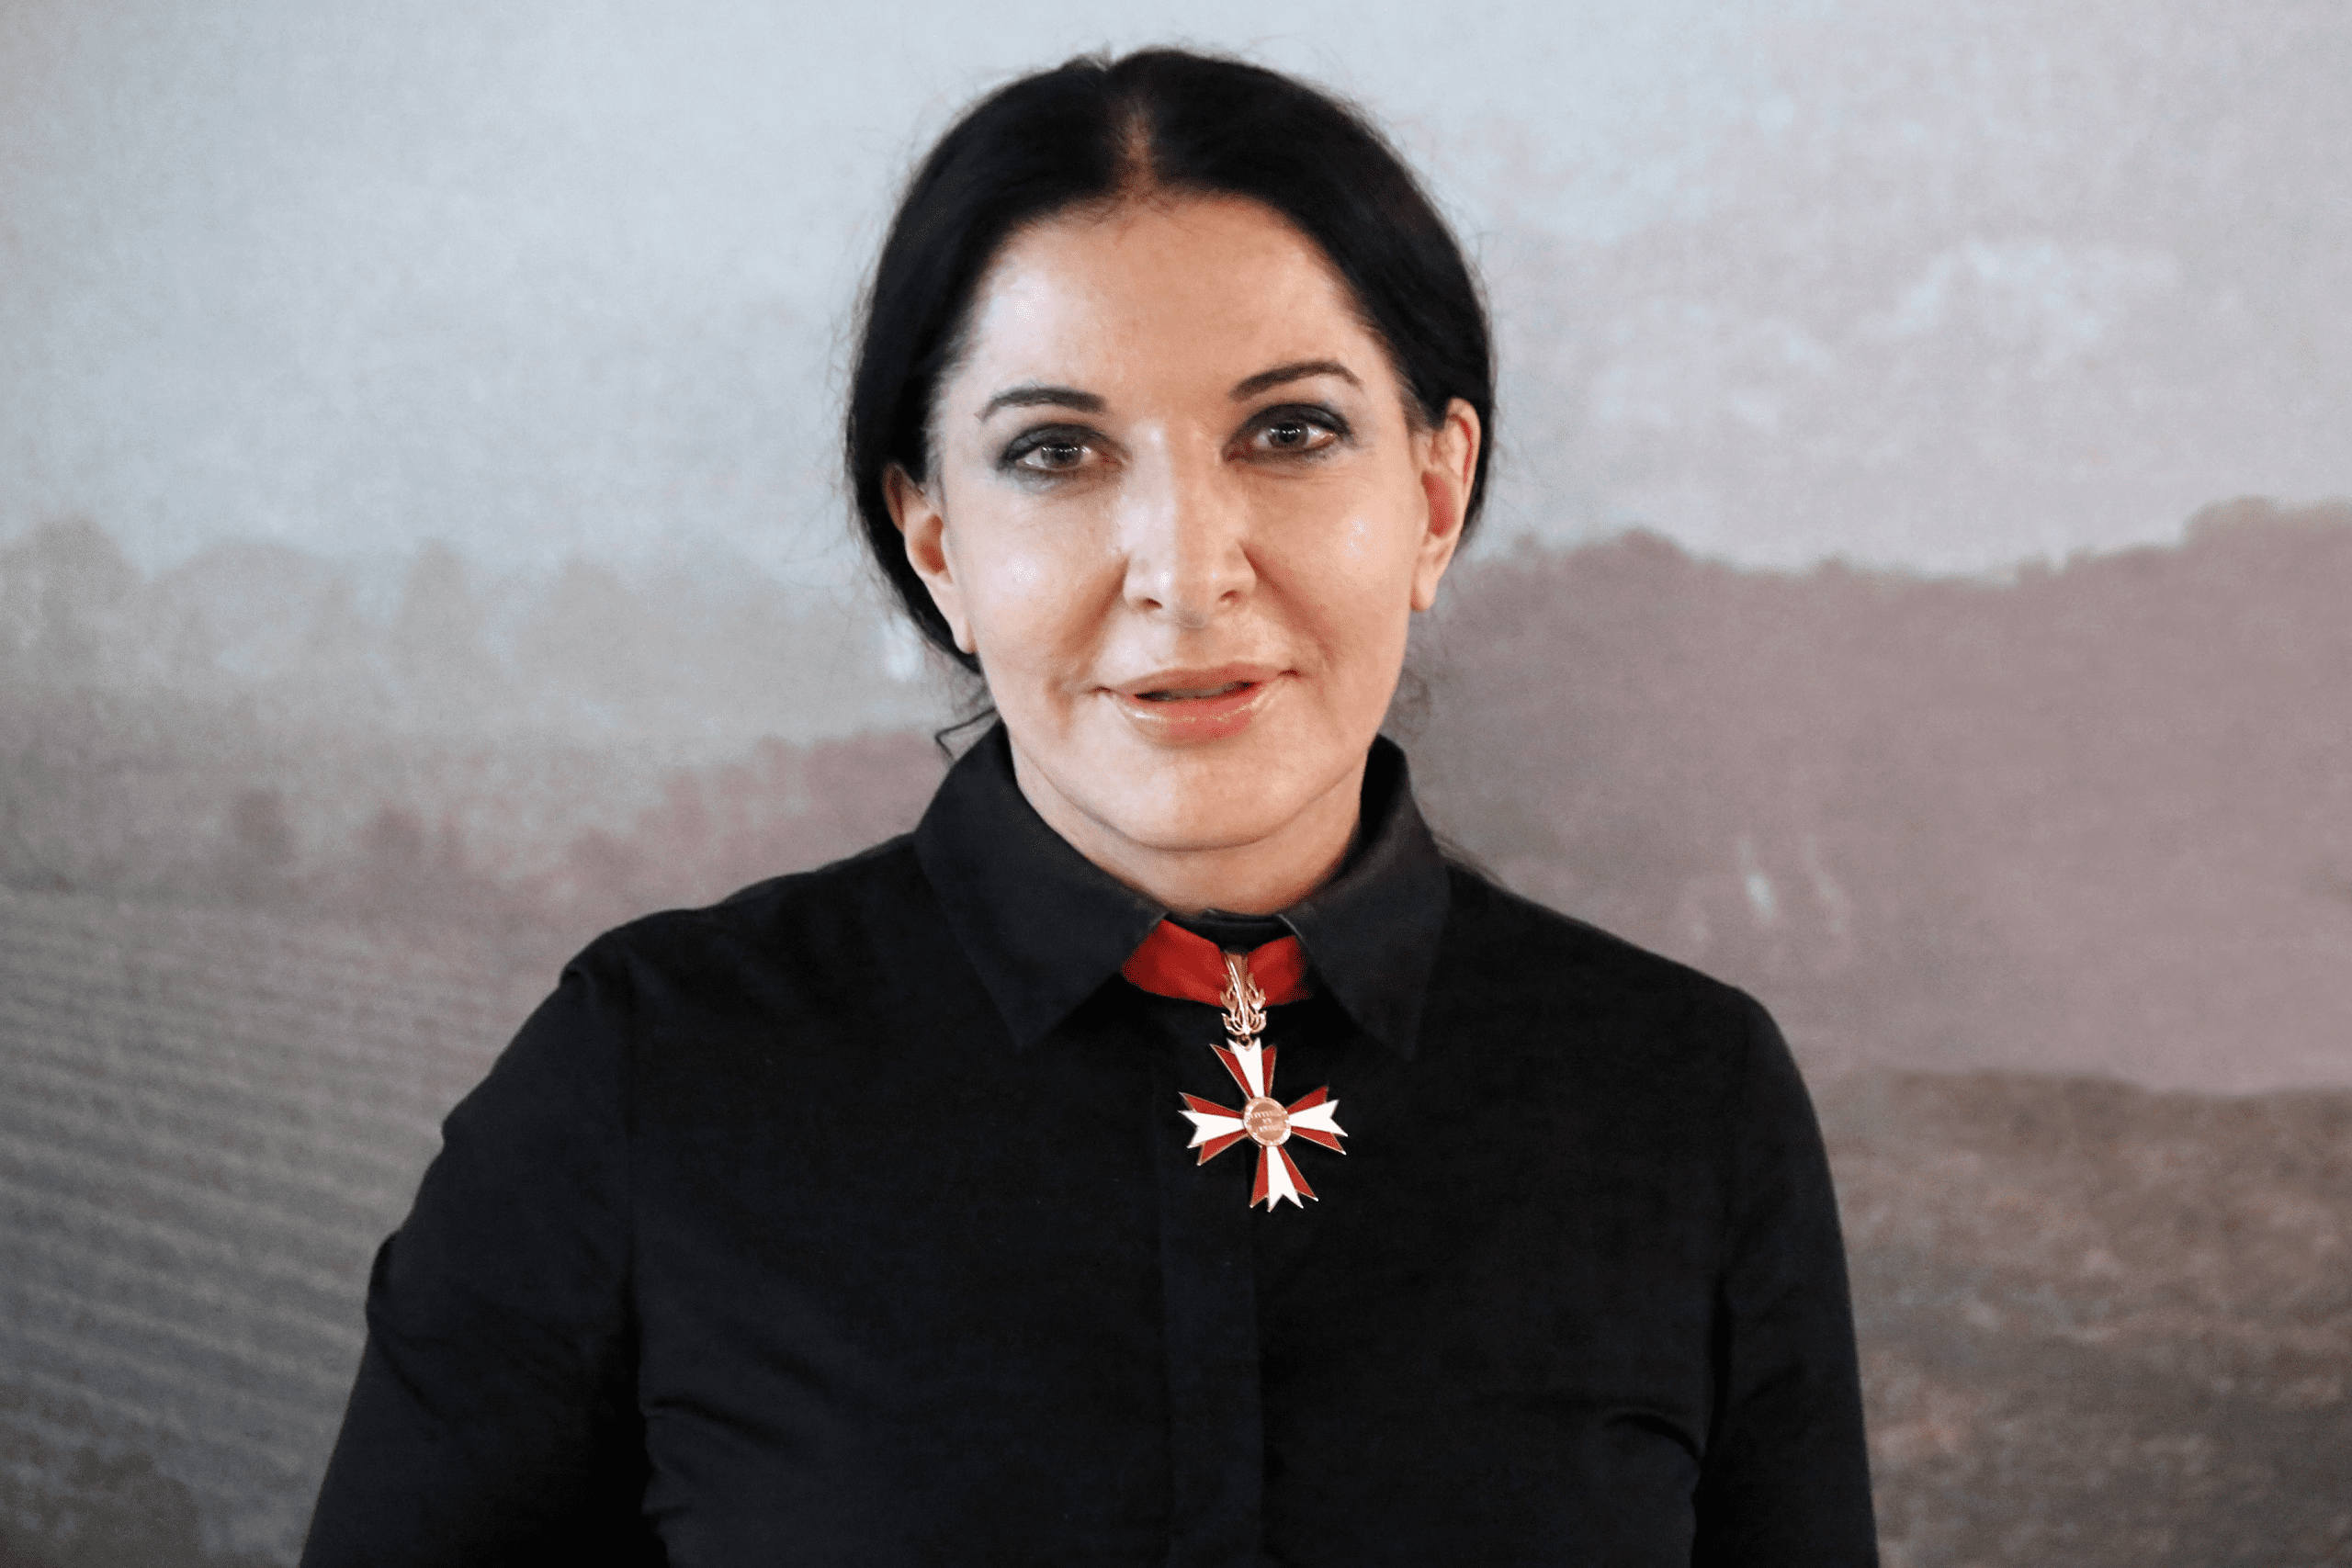 Who is Marina Abramović? – Is She CONNECTED To Spirit Cooking, Cannibalism, and Satanism?